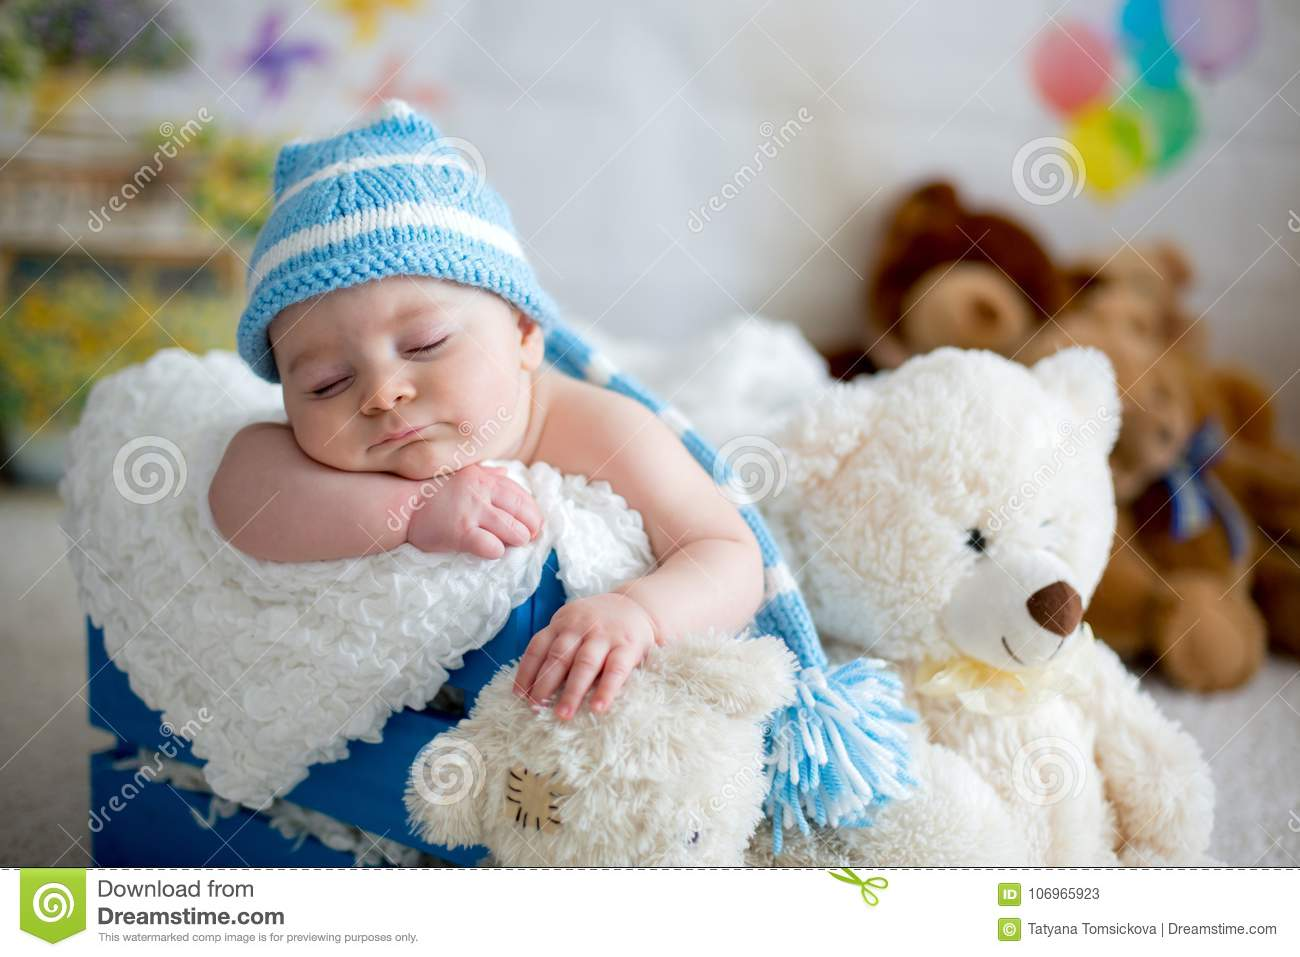 Baby Newborn Teddy Little Baby Boy With Knitted Hat Sleeping With Cute Teddy